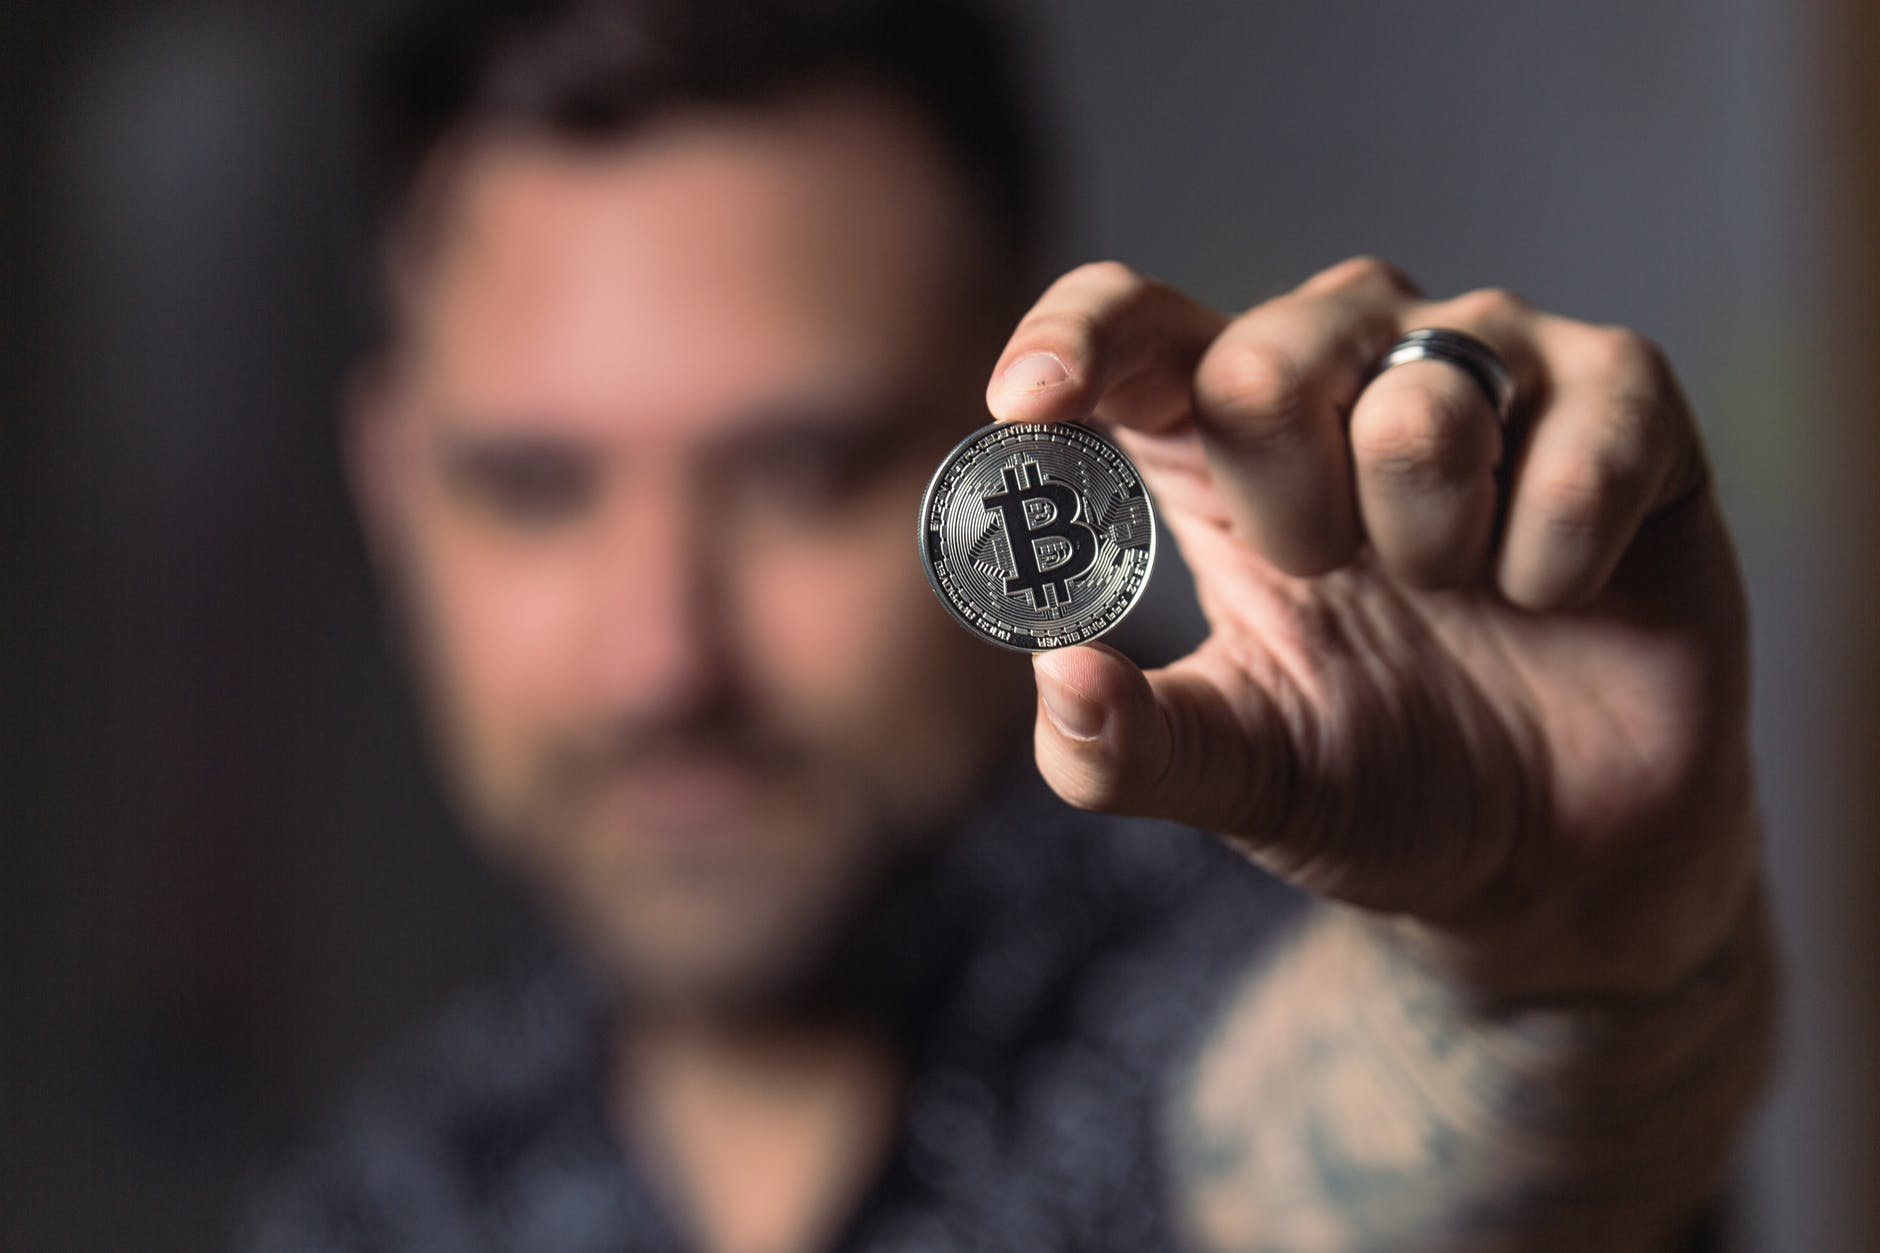 4 Things You Must Think About When Customizing Challenge Coins